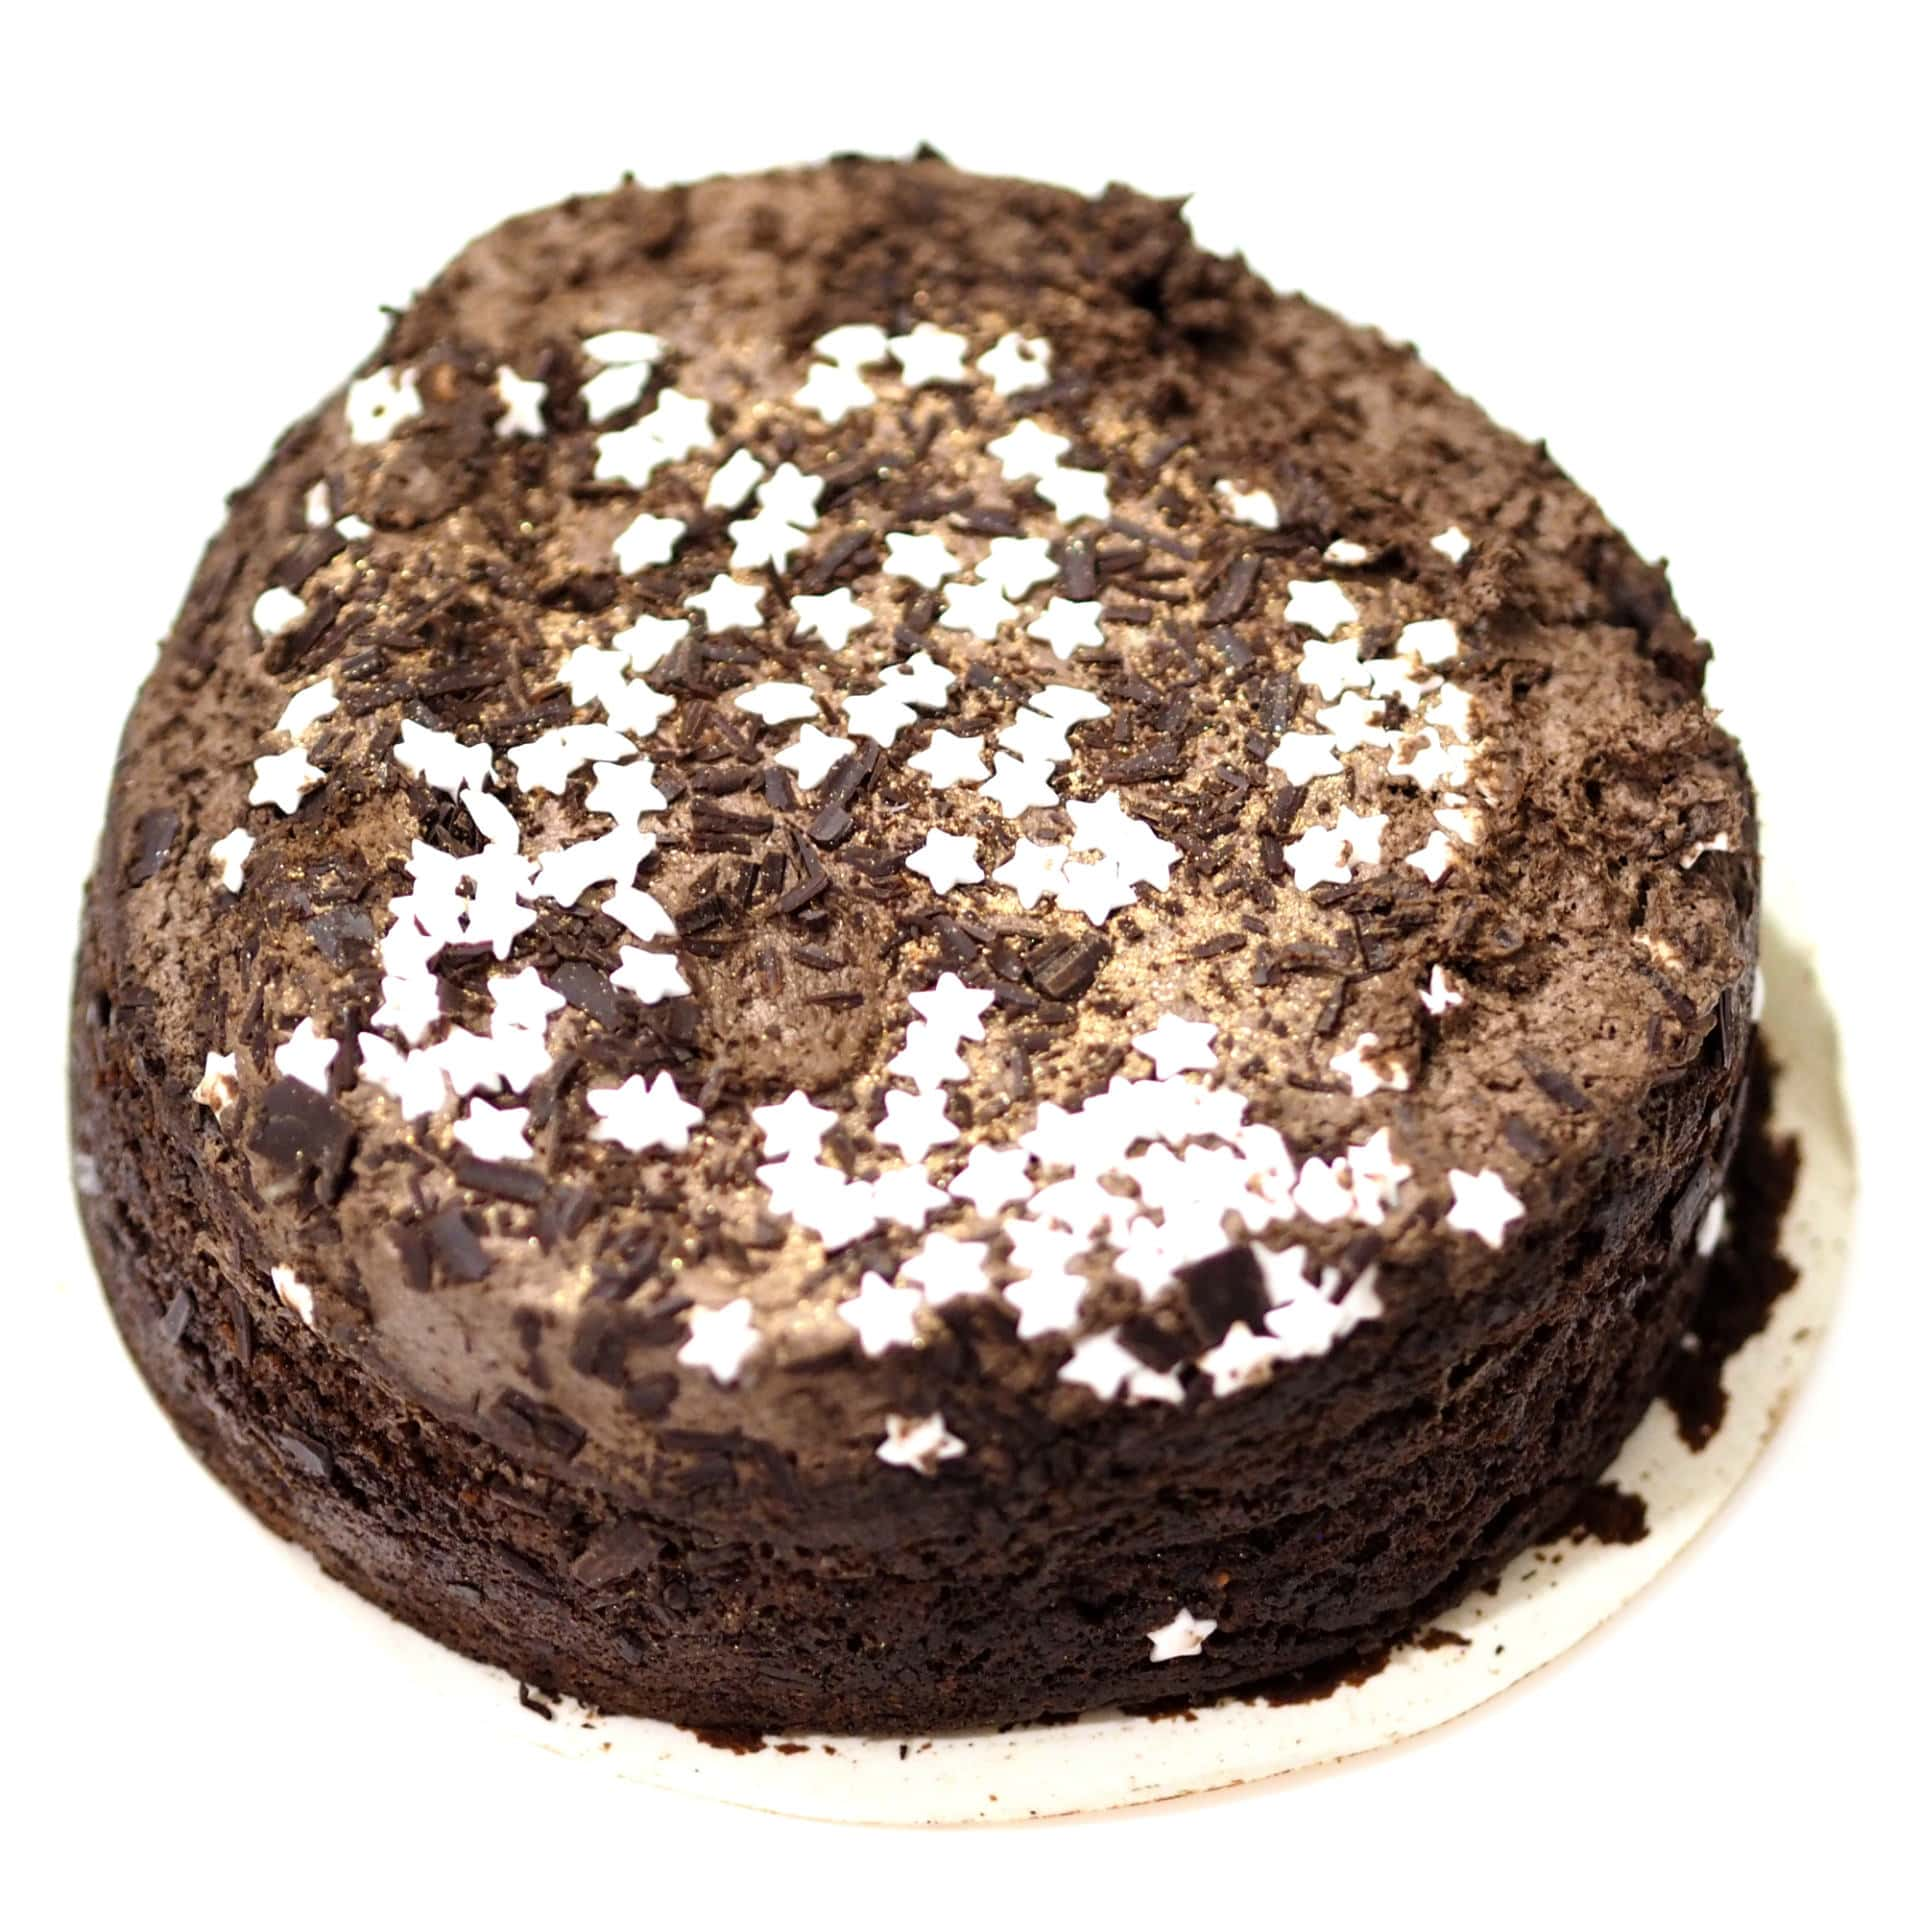 Oggs Chocolate Celebration Cake